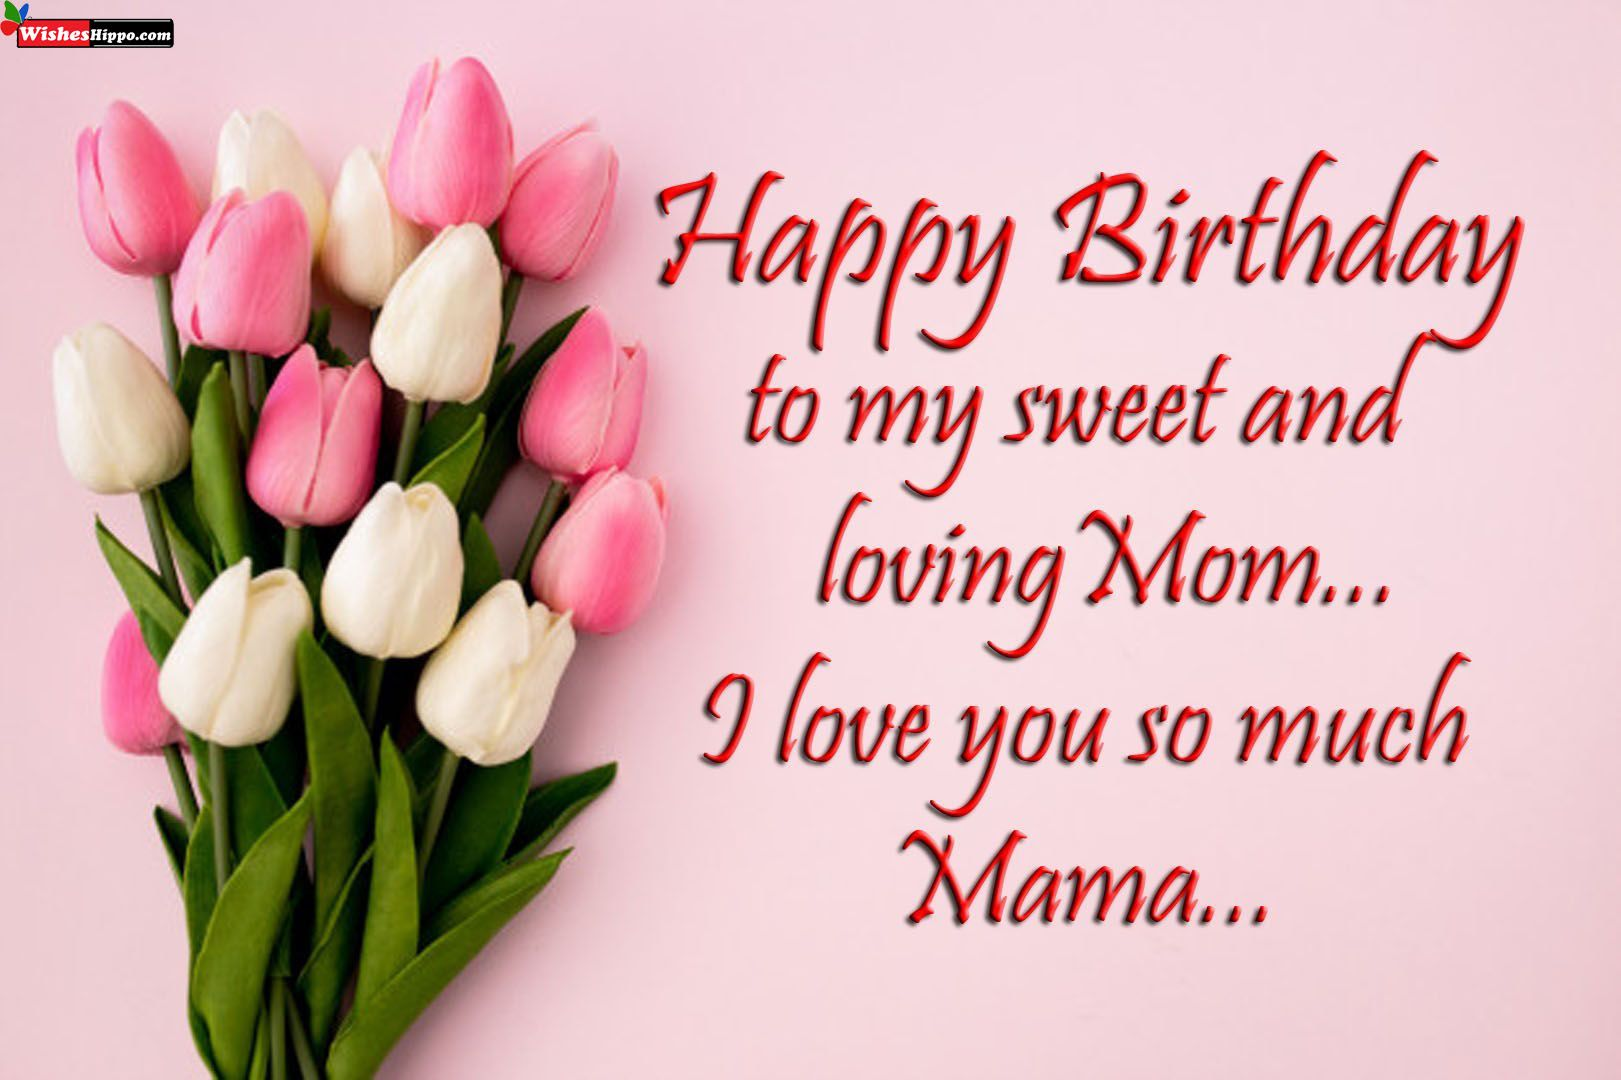 Pin By Wisheshippo On Birthday Wishes In 2021 Birthday Wishes For Mom Birthday Wishes For Mother Happy Birthday Mom Images